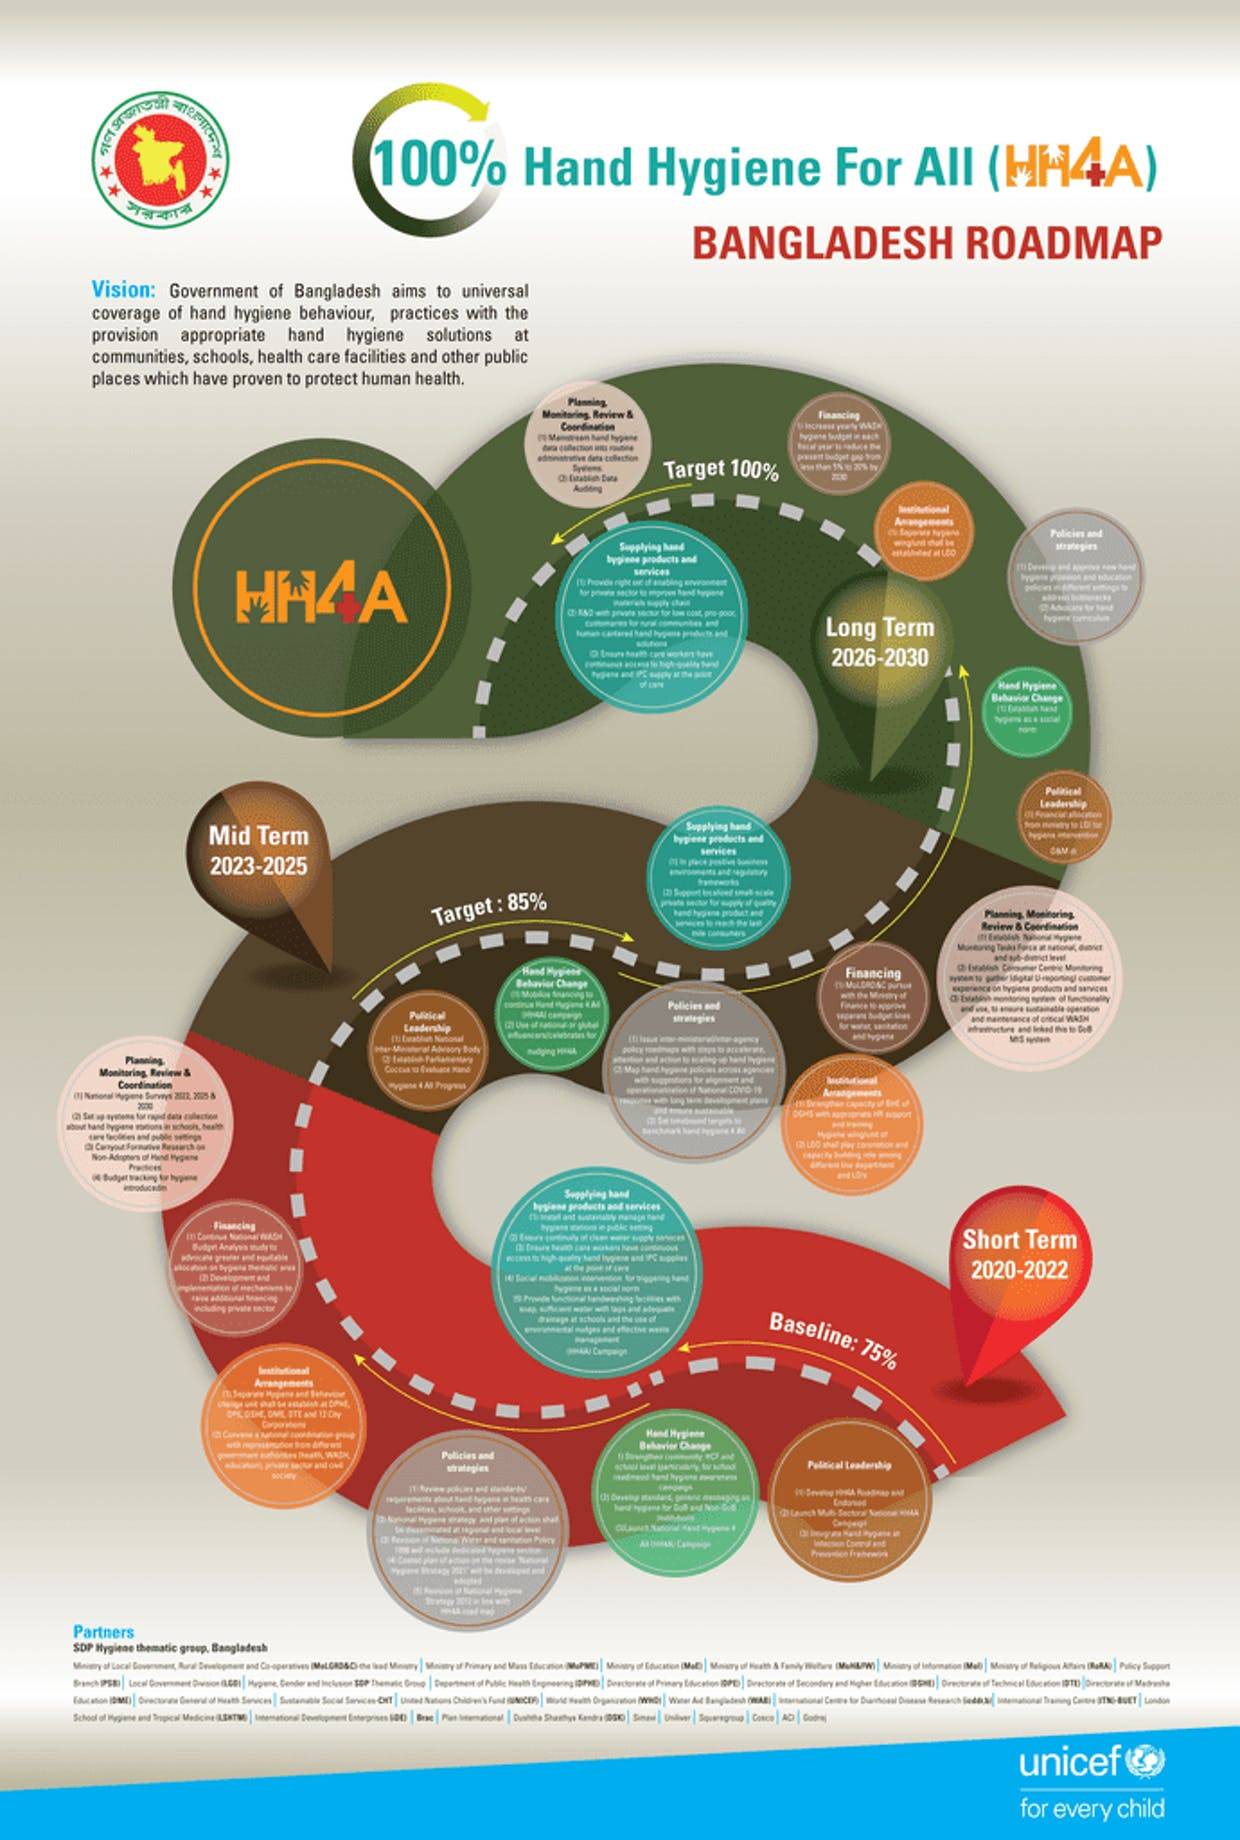 Is there any country that has developed a roadmap for implementation of the HH4A initiative to share with us the experience?